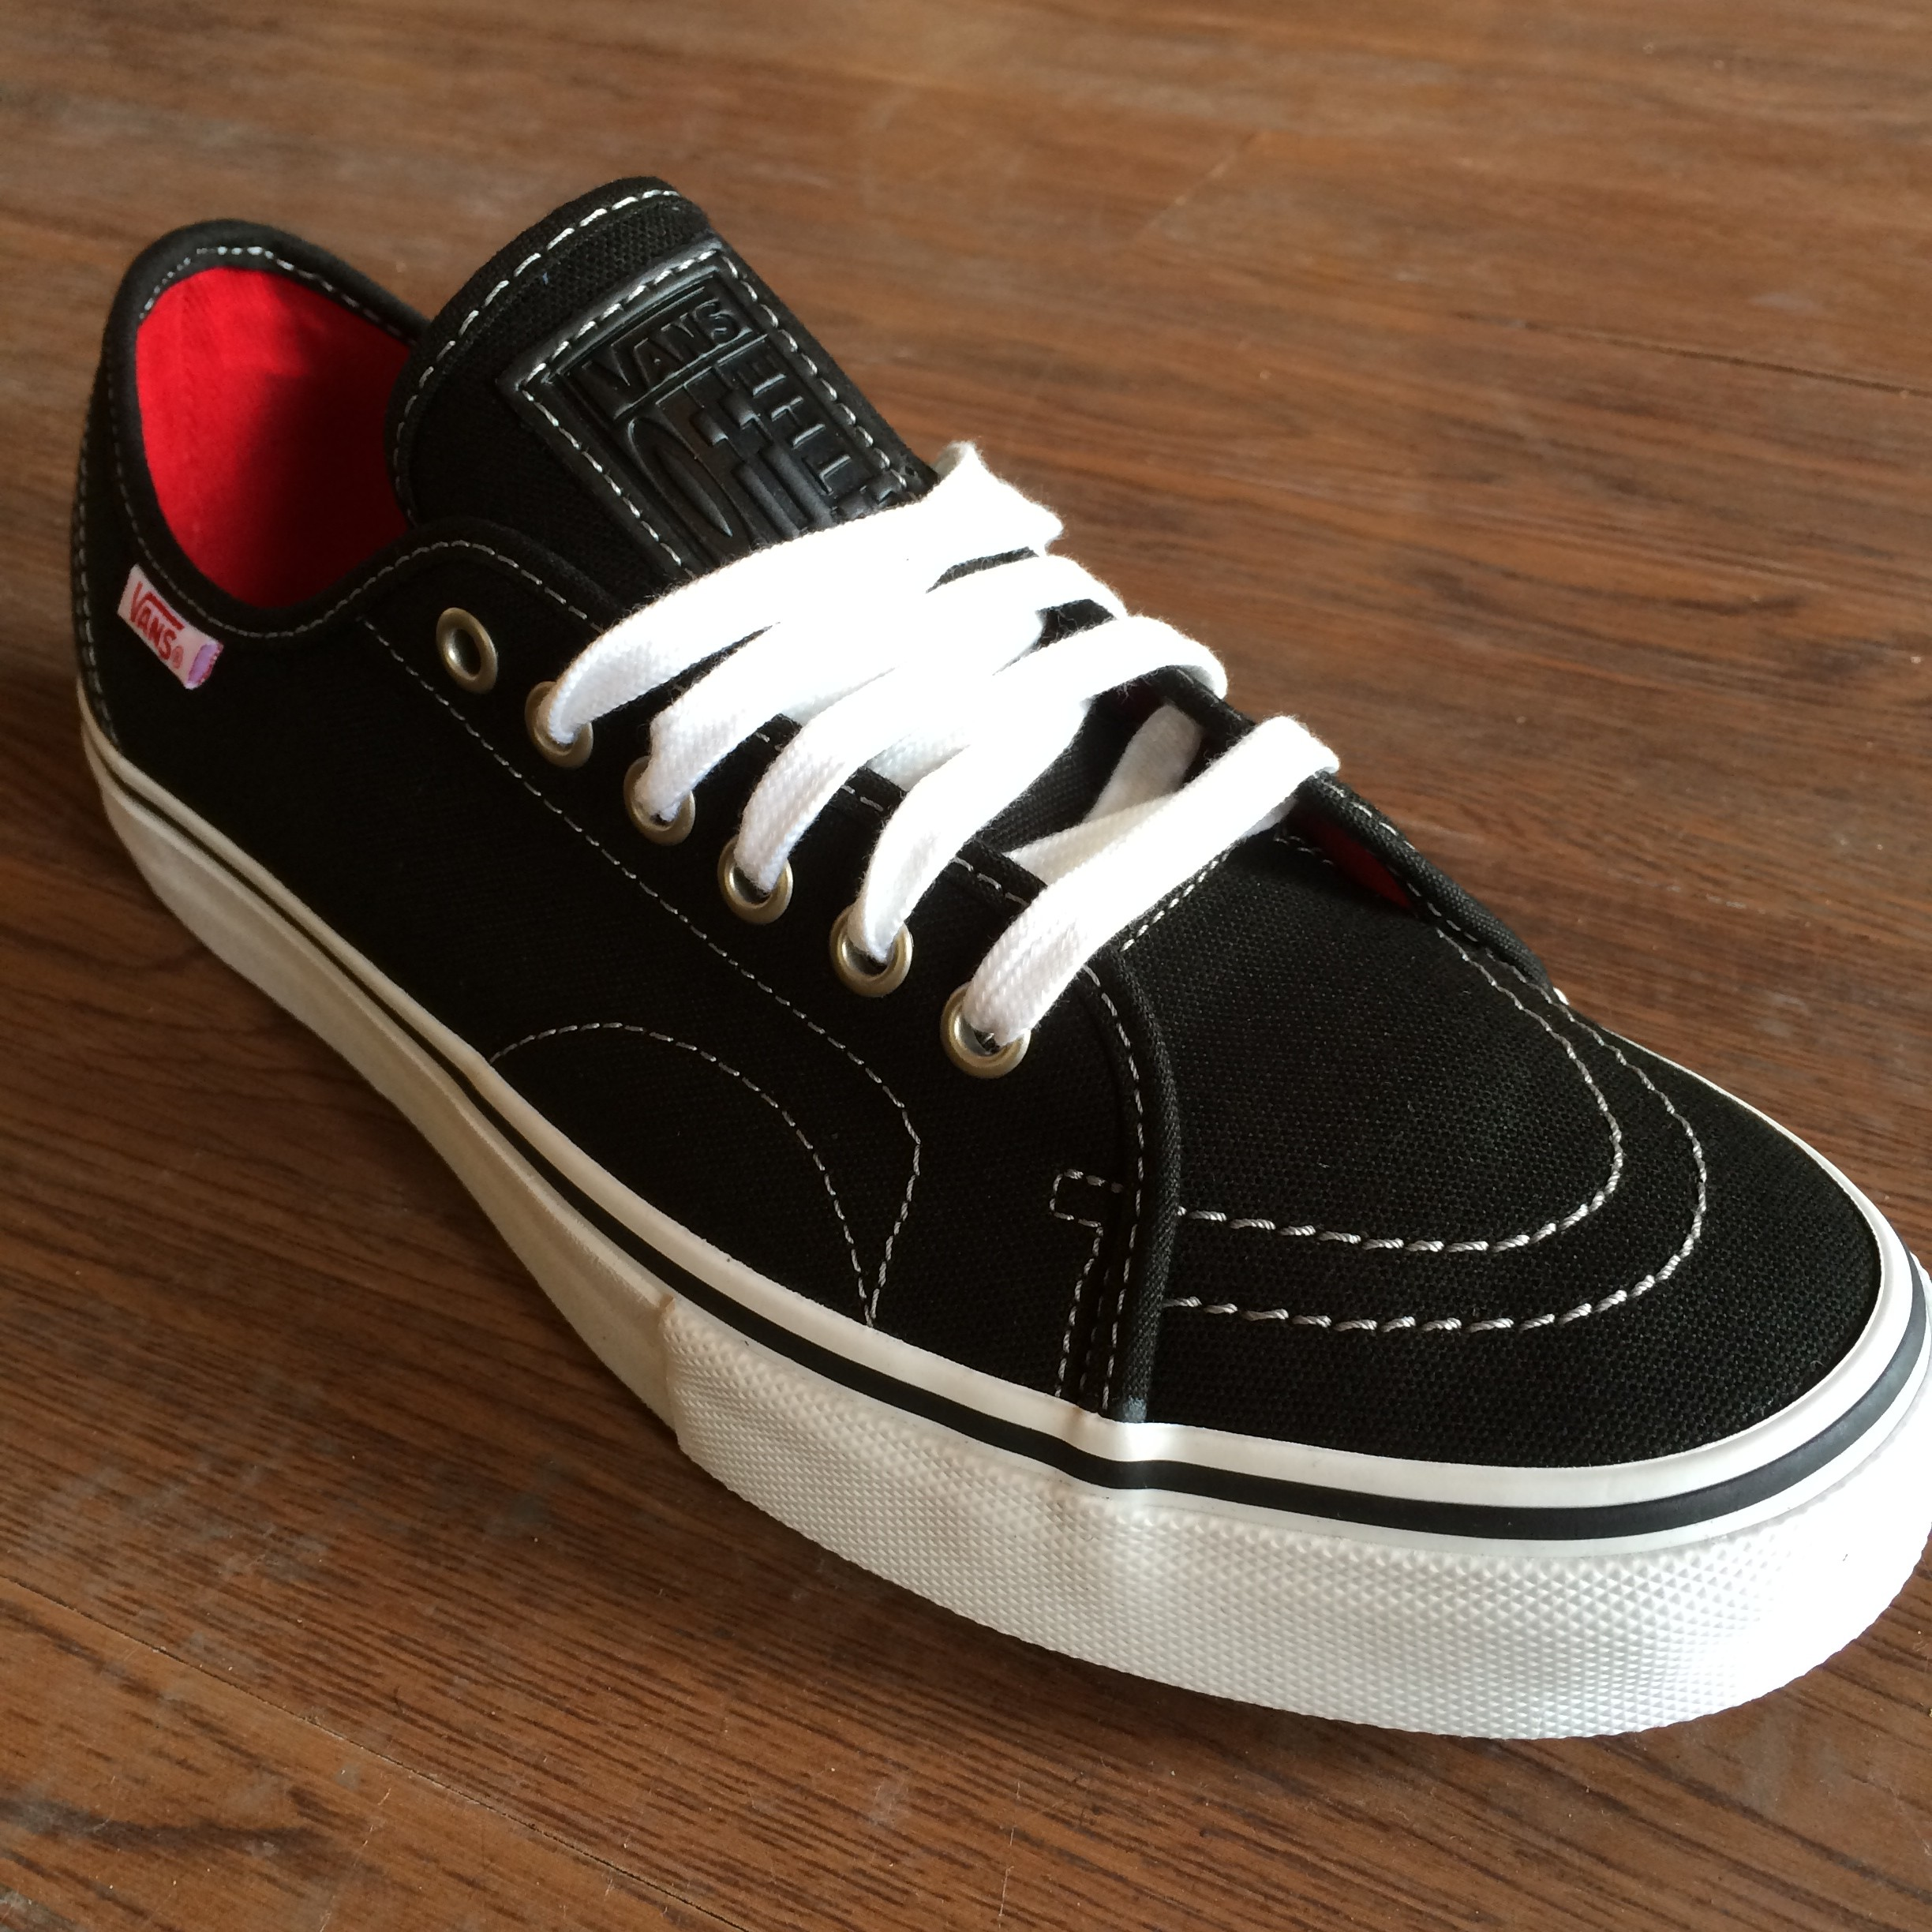 f0f5da82edd8e9 New Shoes From Vans Just Came In. Sk8-Hi s